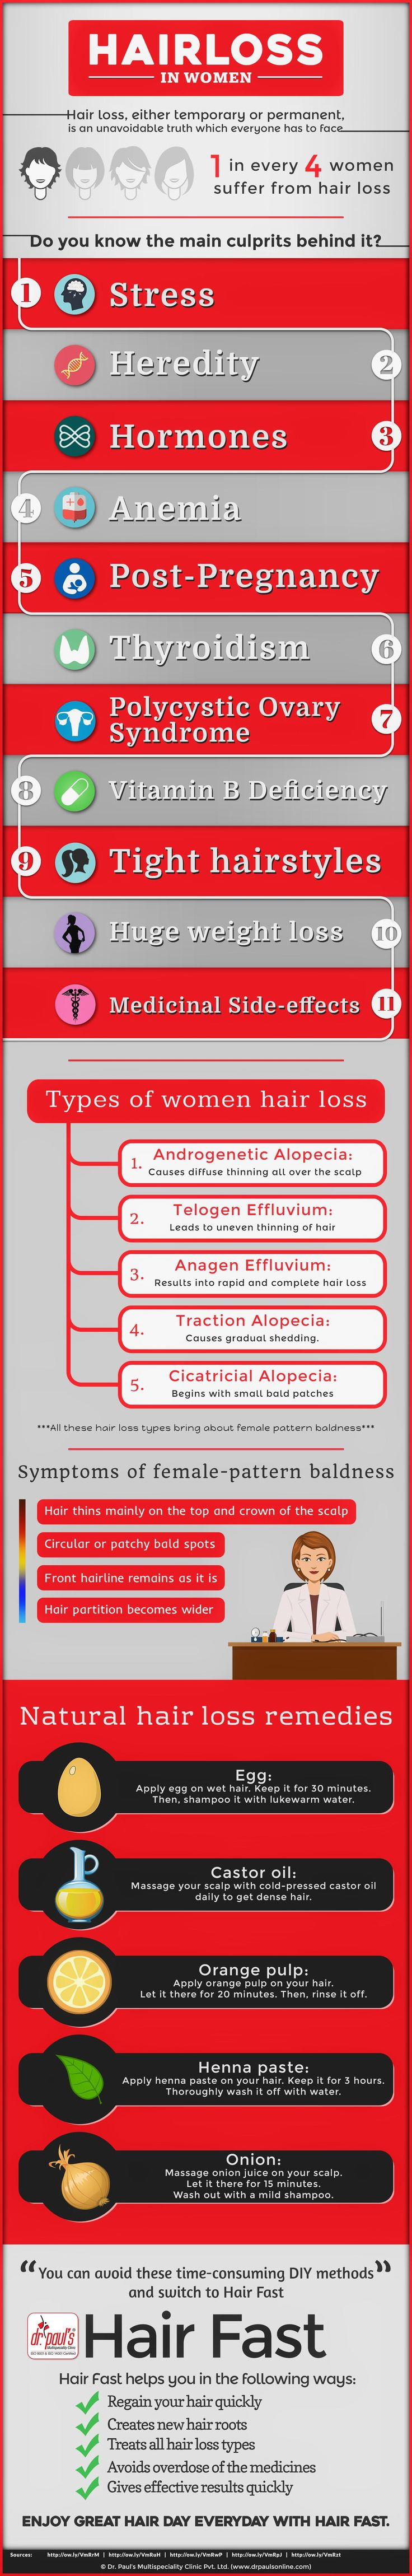 #femalehairloss infographic #hairloss